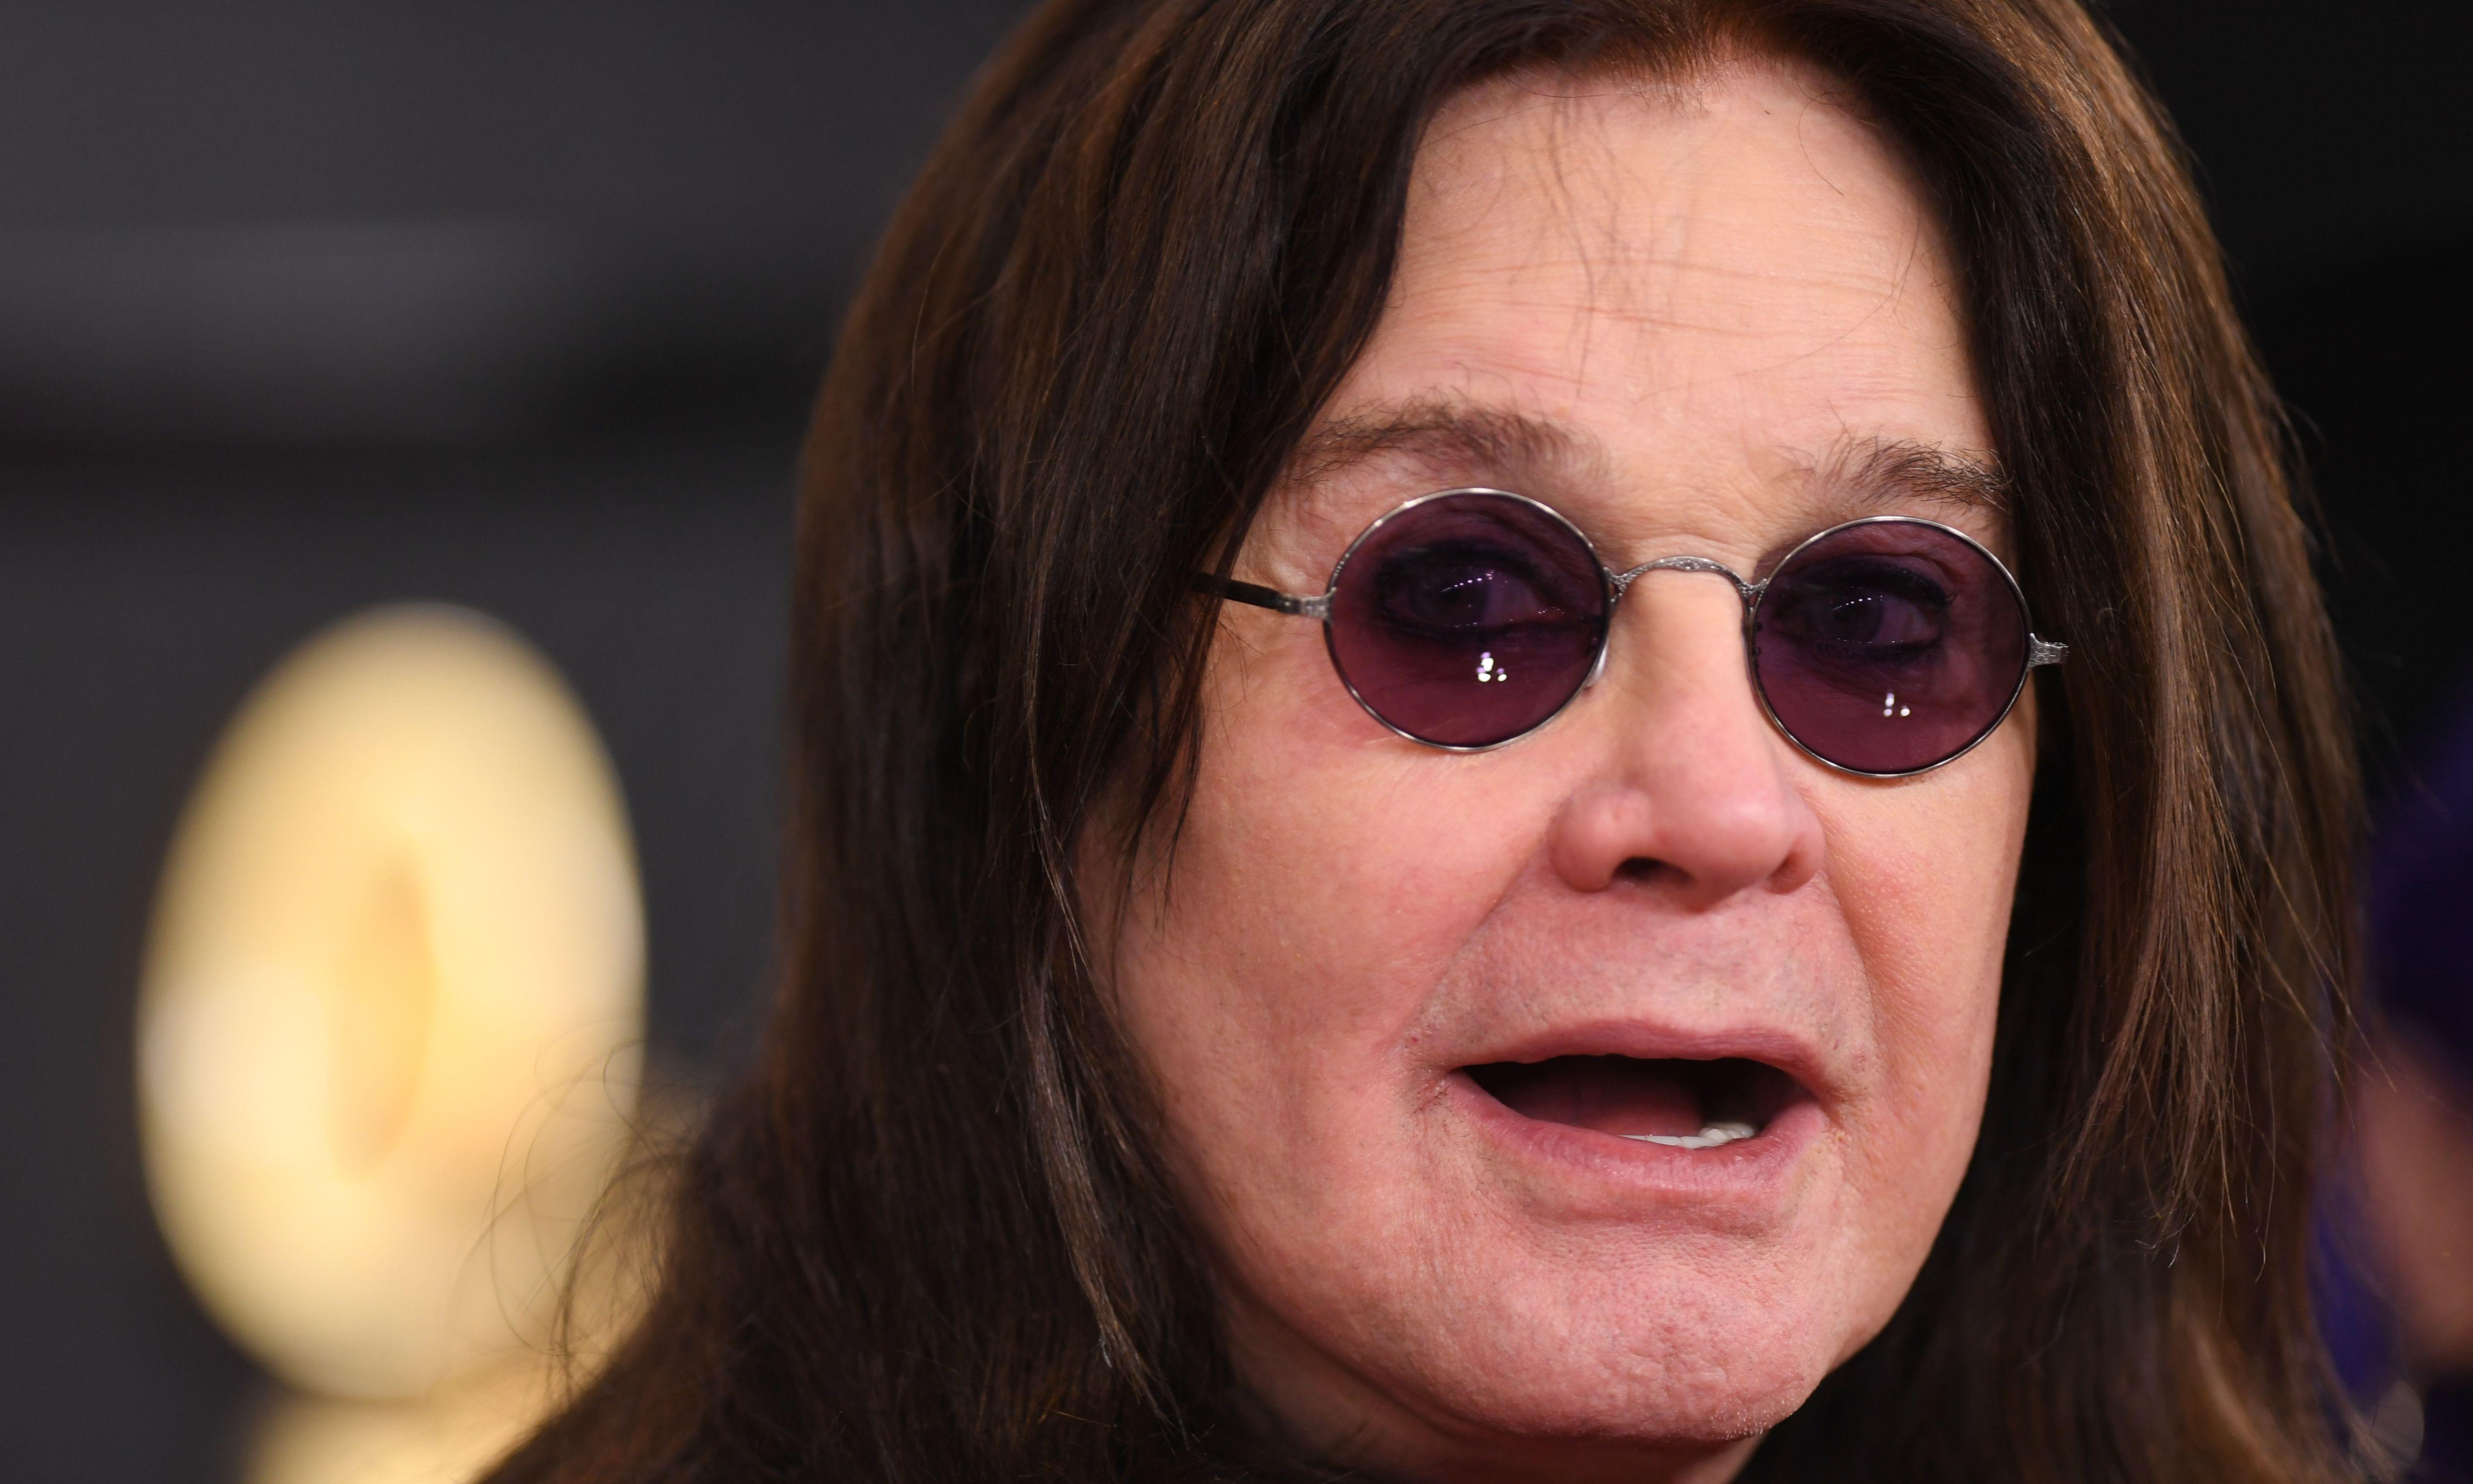 Ozzy Osbourne cancels US tour due to ongoing ill health